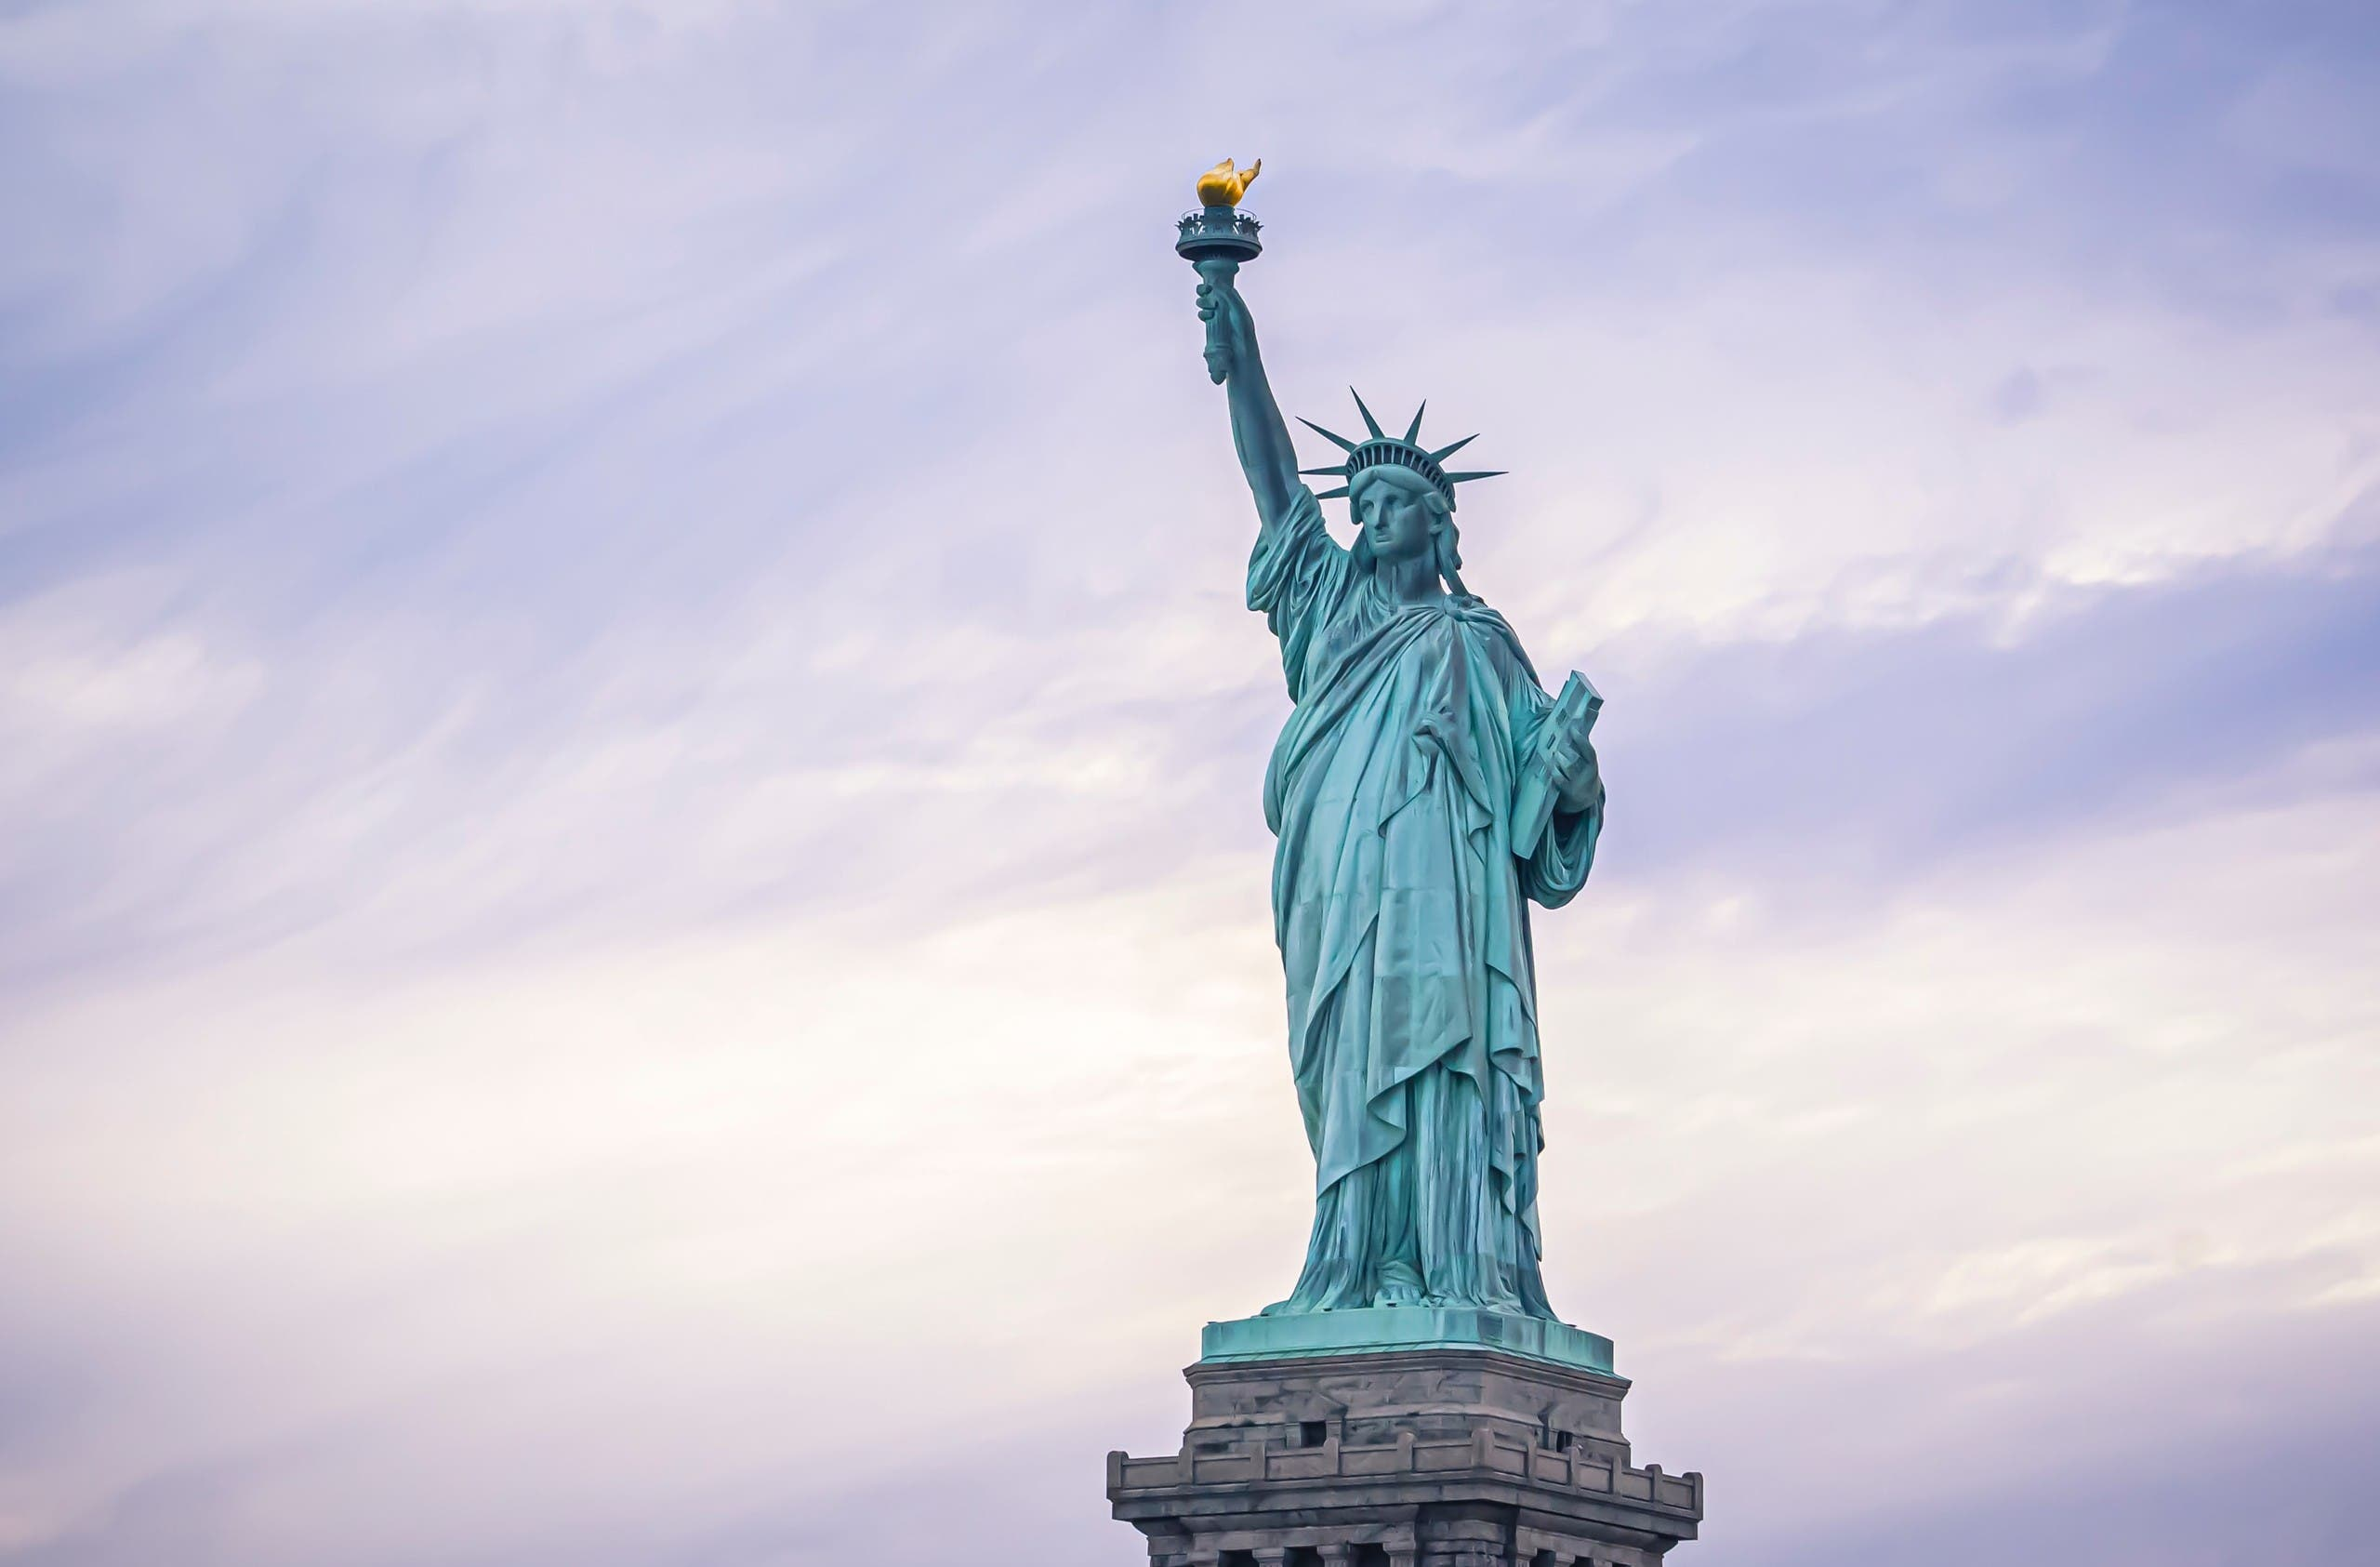 The Statue of Liberty has stood on Liberty Island in New York Harbor as a universal symbol of freedom since 1886. (Unsplash)